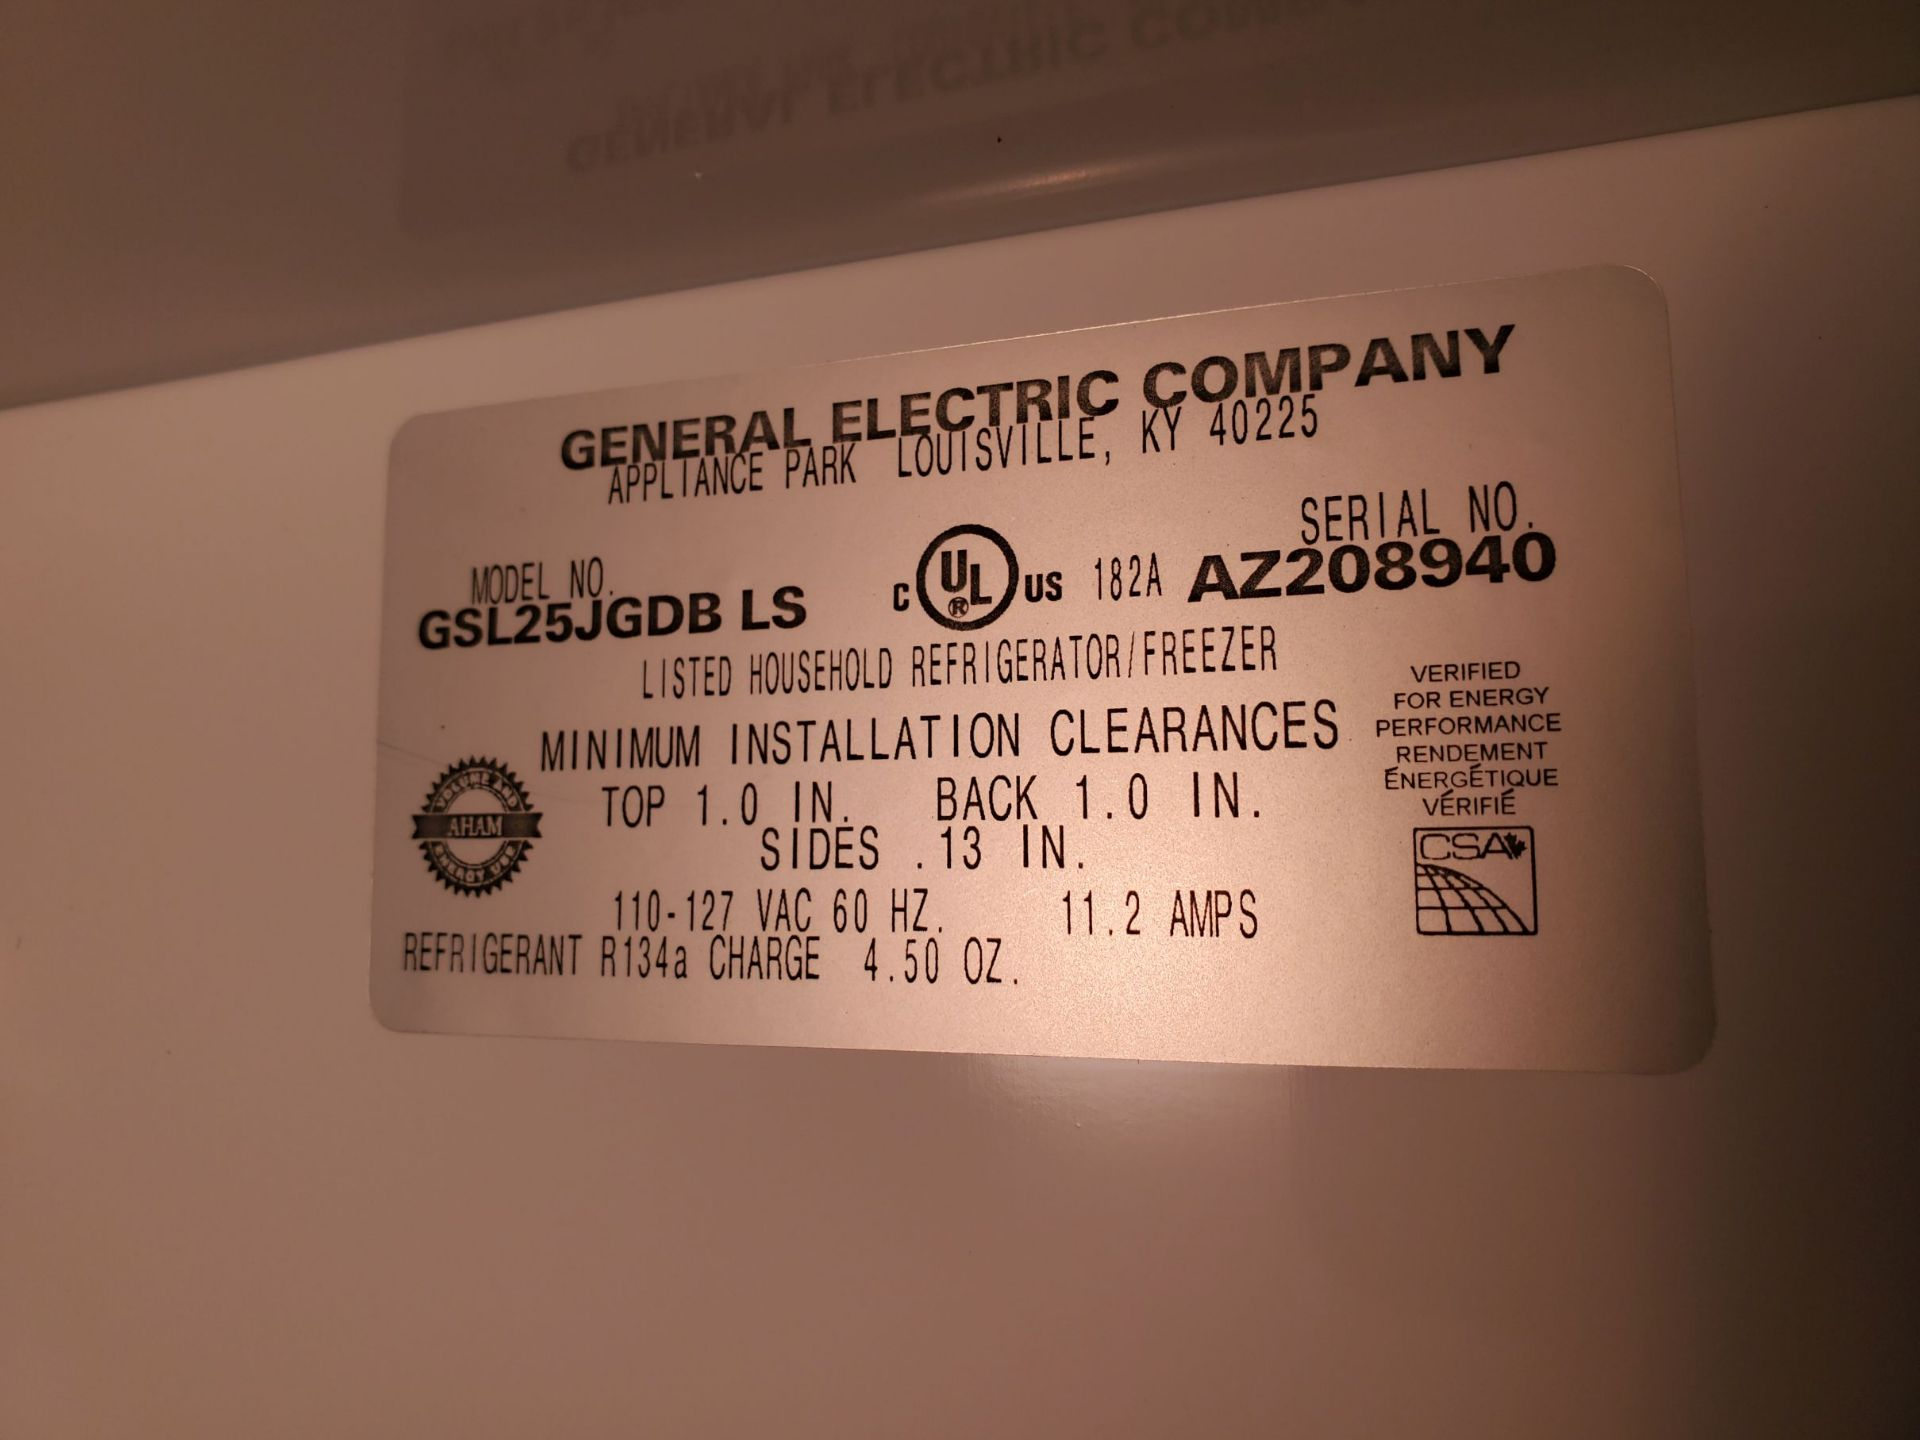 General Electric Refrigerator - Freezer - Image 2 of 2